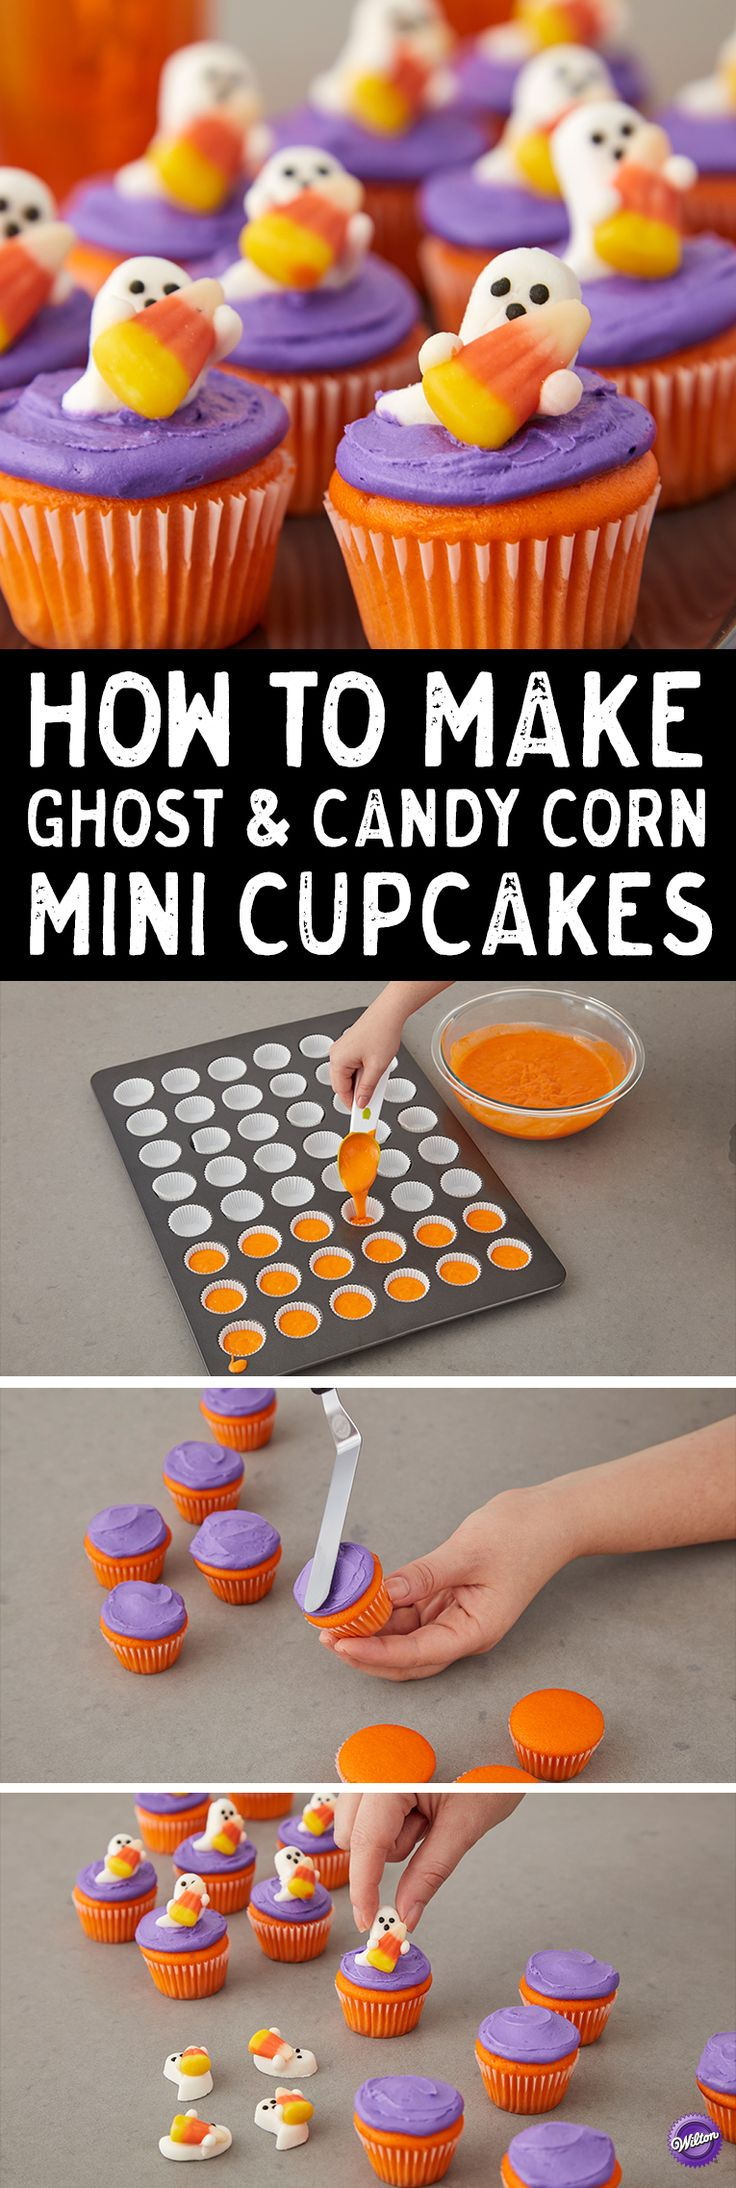 How to Make Ghost & Candy Corn Mini Cupcakes - These mini cupcakes are adorable and easy to make! Tint cupcake batter with orange and top with purple icing. Decorate with Wilton Ghost and Candy Corn Icing Decorations. Great for Halloween party ideas, school functions or any time you need mini cupcakes that makes a huge impact for fun!